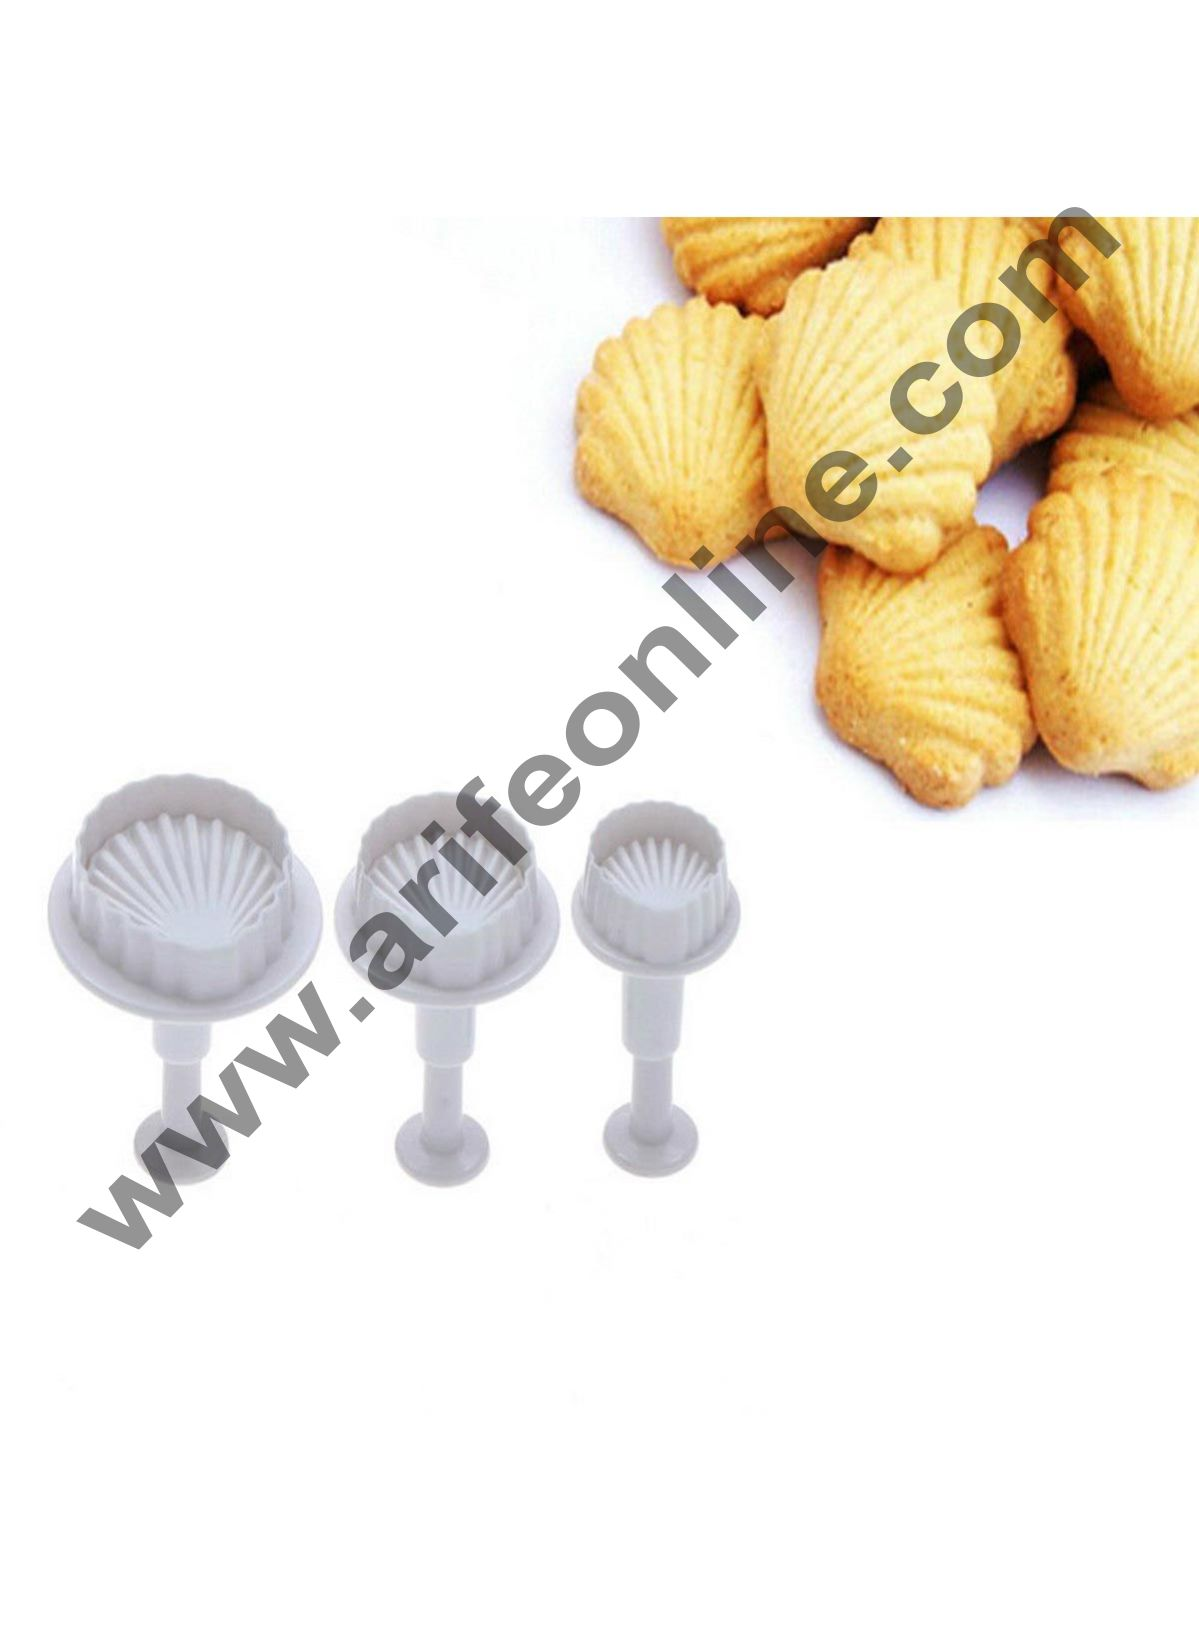 Cake Decor 3Pcs Shell Shape Plunger Cutter Fondant Cake Decor Tools Sugar Craft Cookie Mold